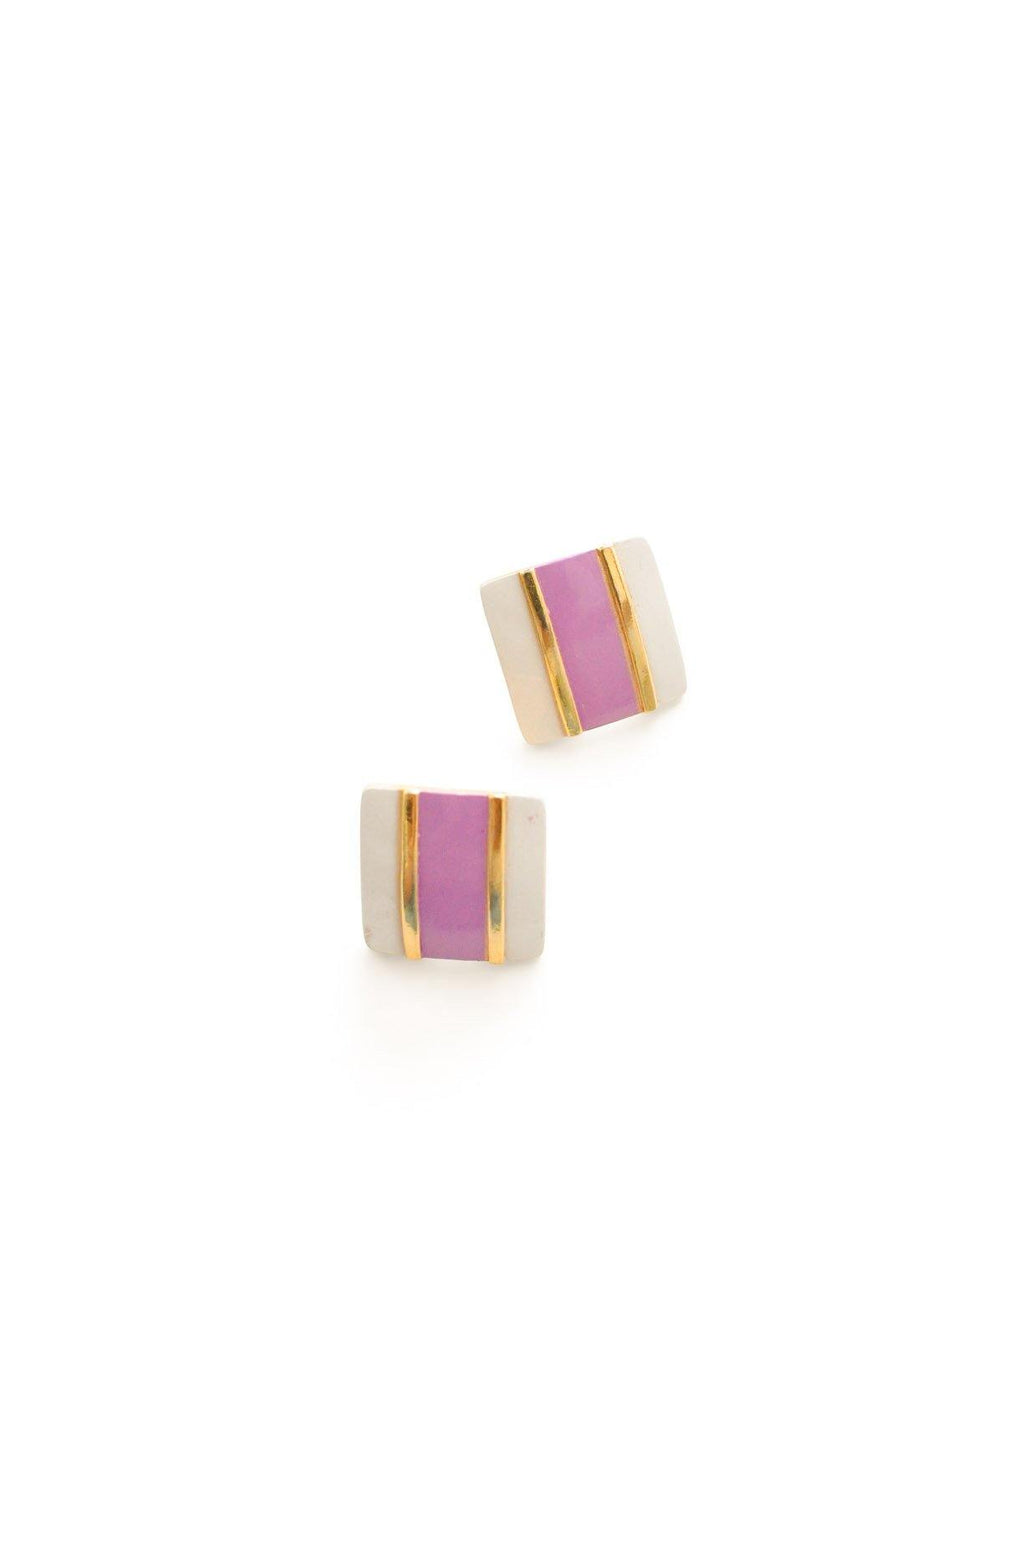 Enamel Square Pierced Earrings